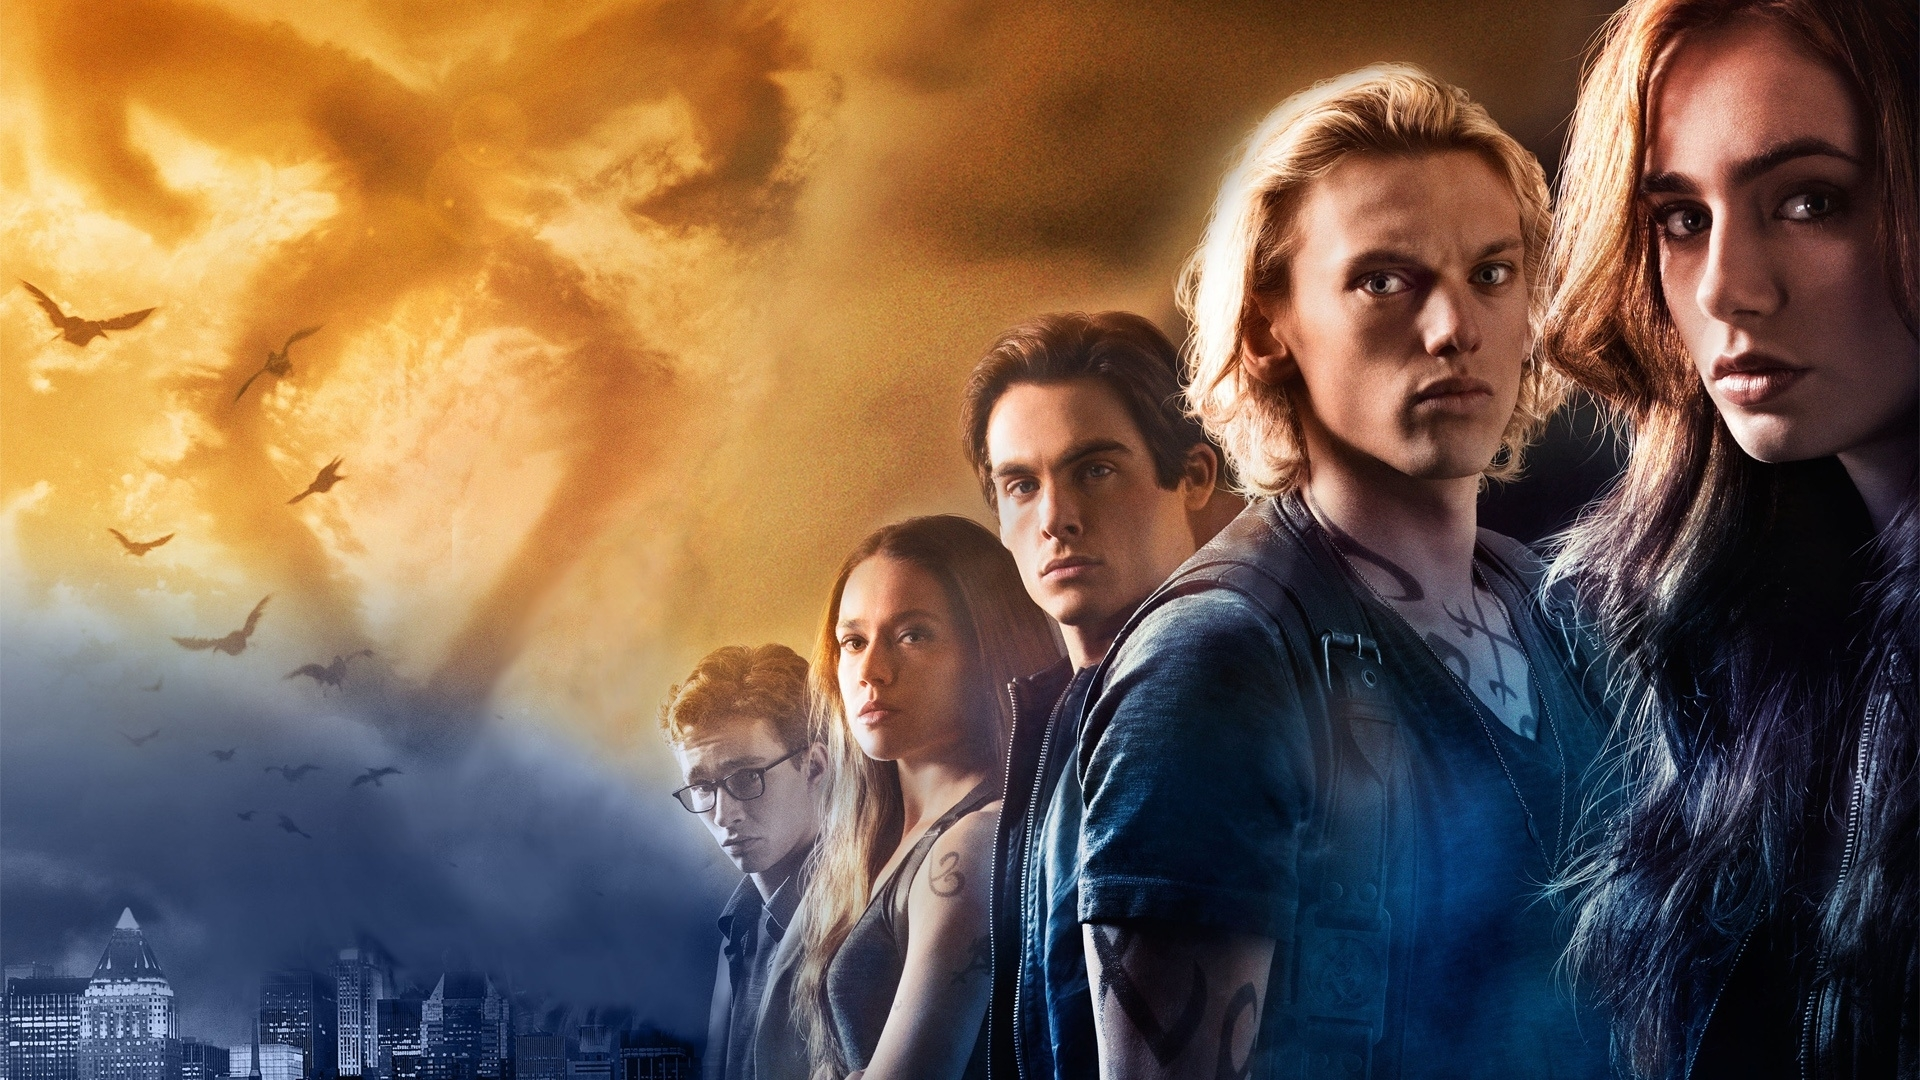 the mortal instruments: city of bones full hd fond d'écran and